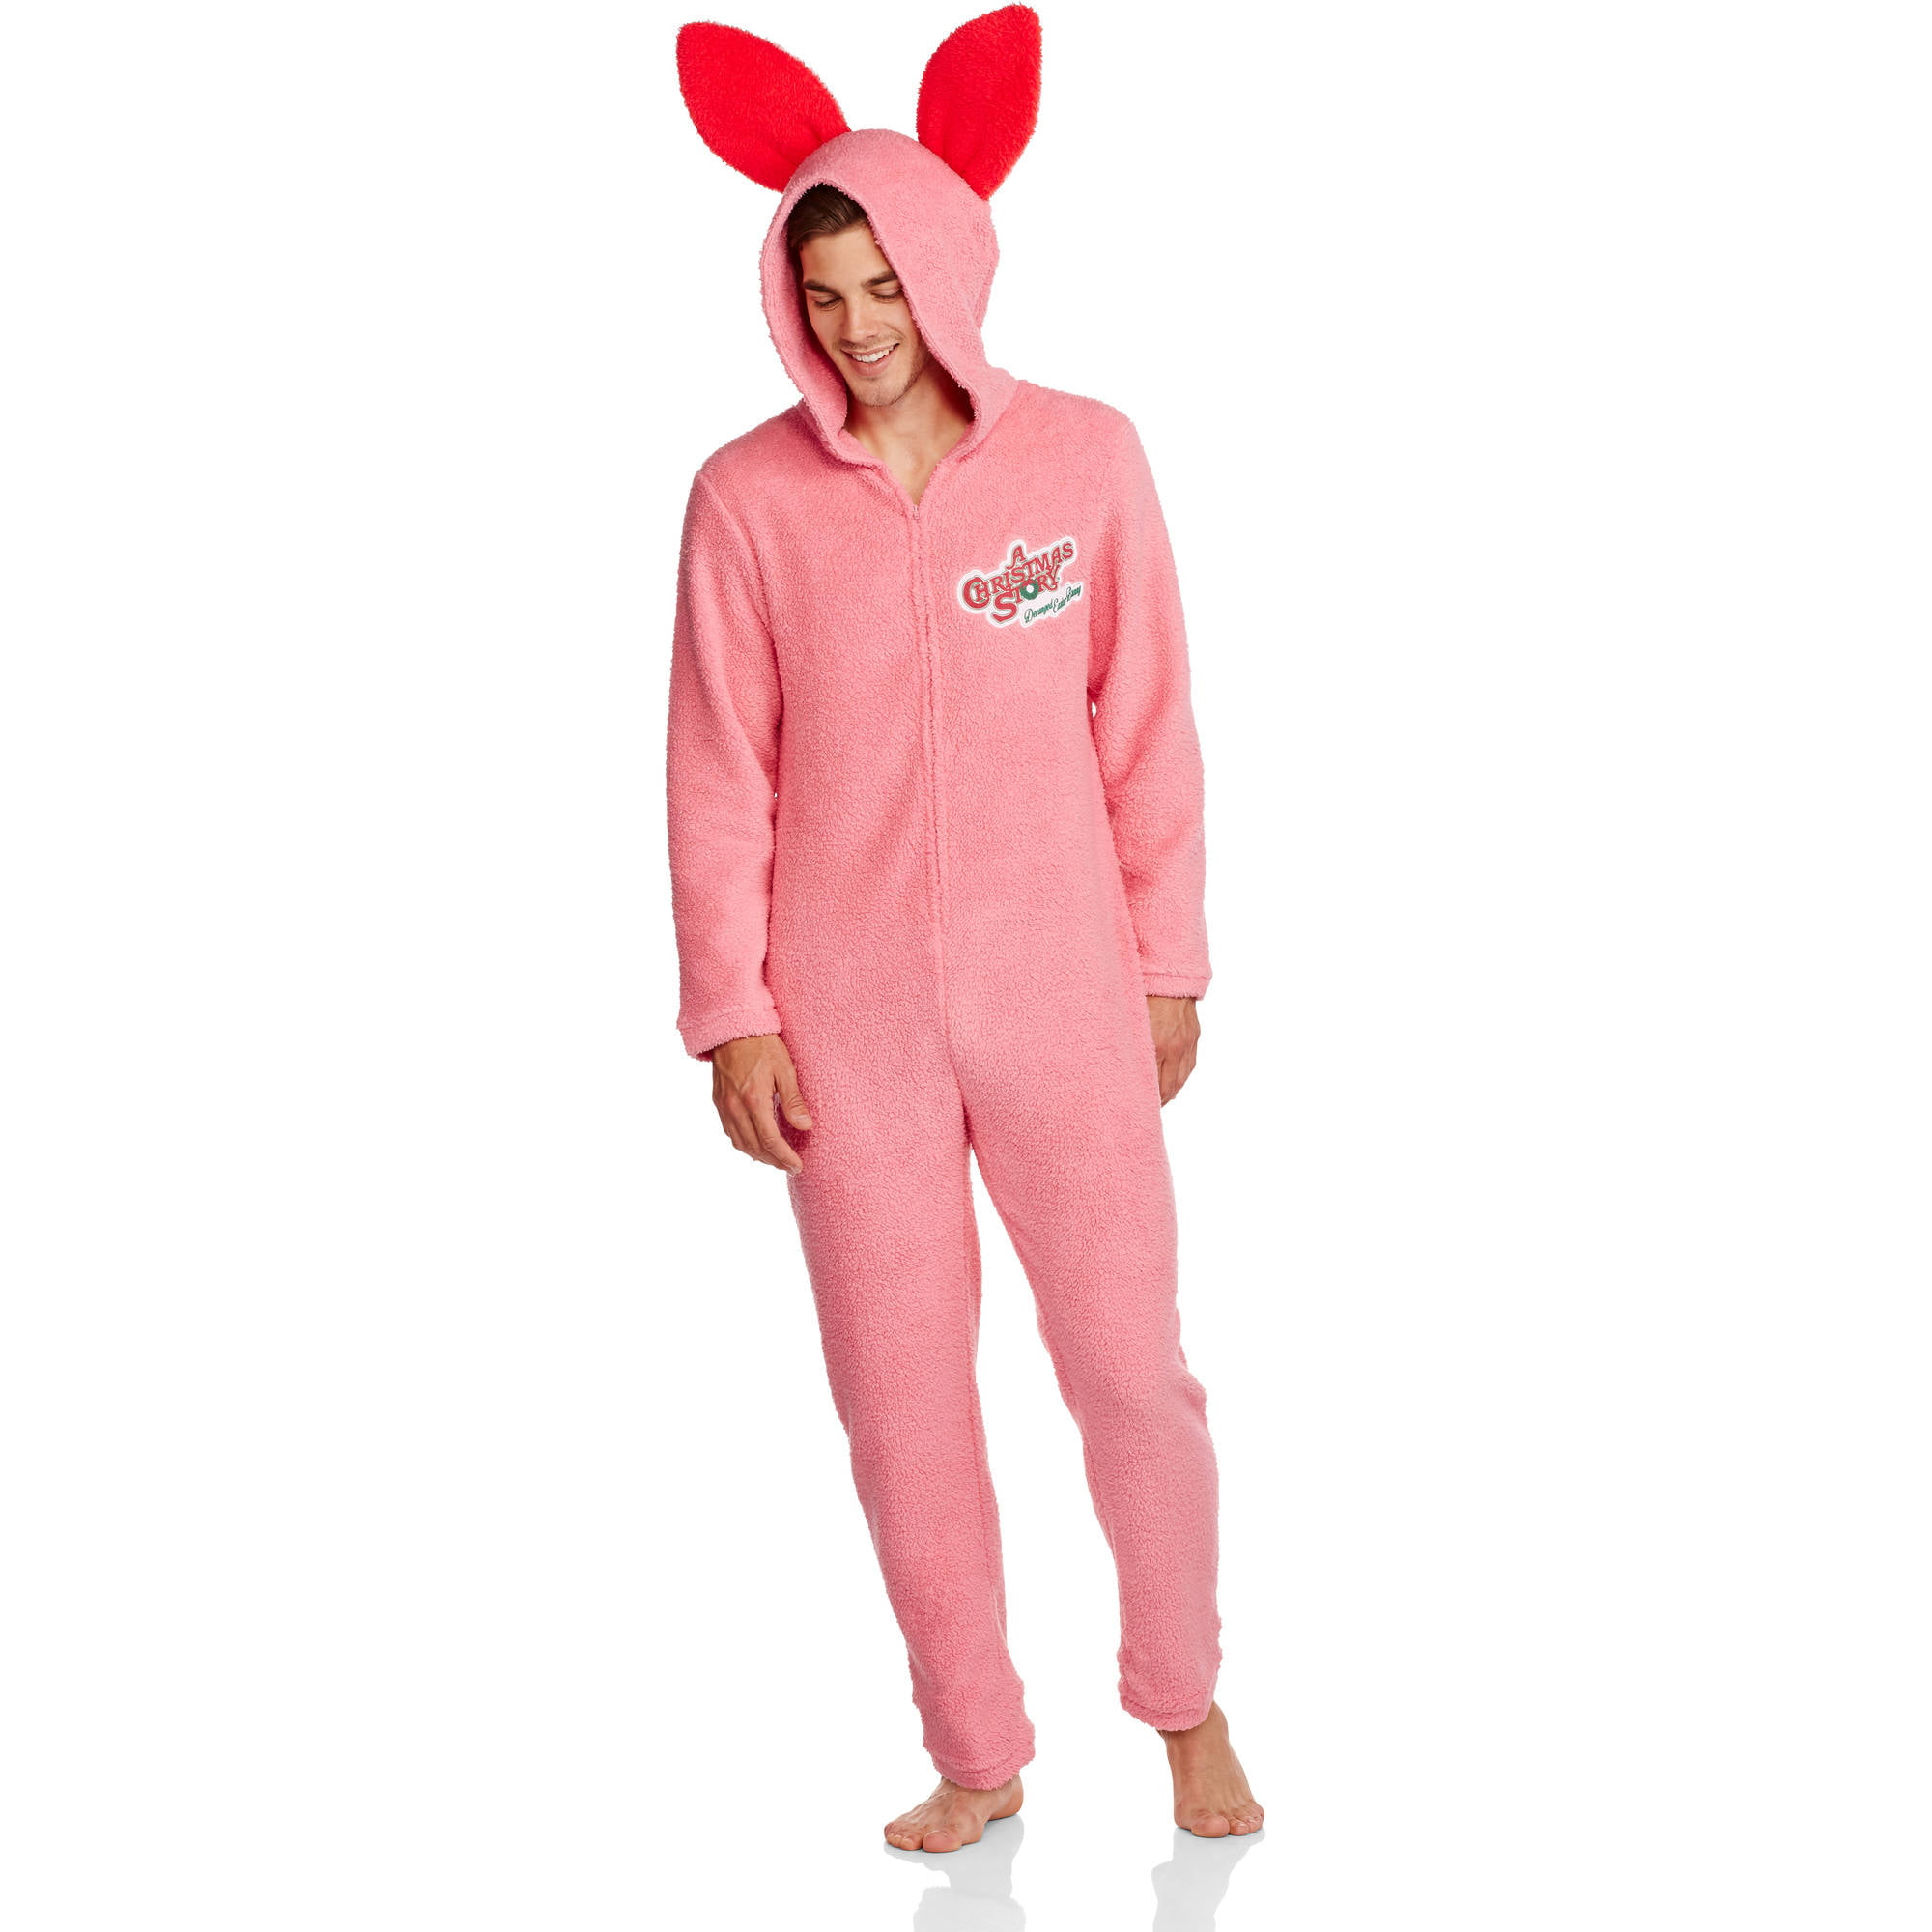 Men's Onesie Pink Bunny Union Suit - Walmart.com